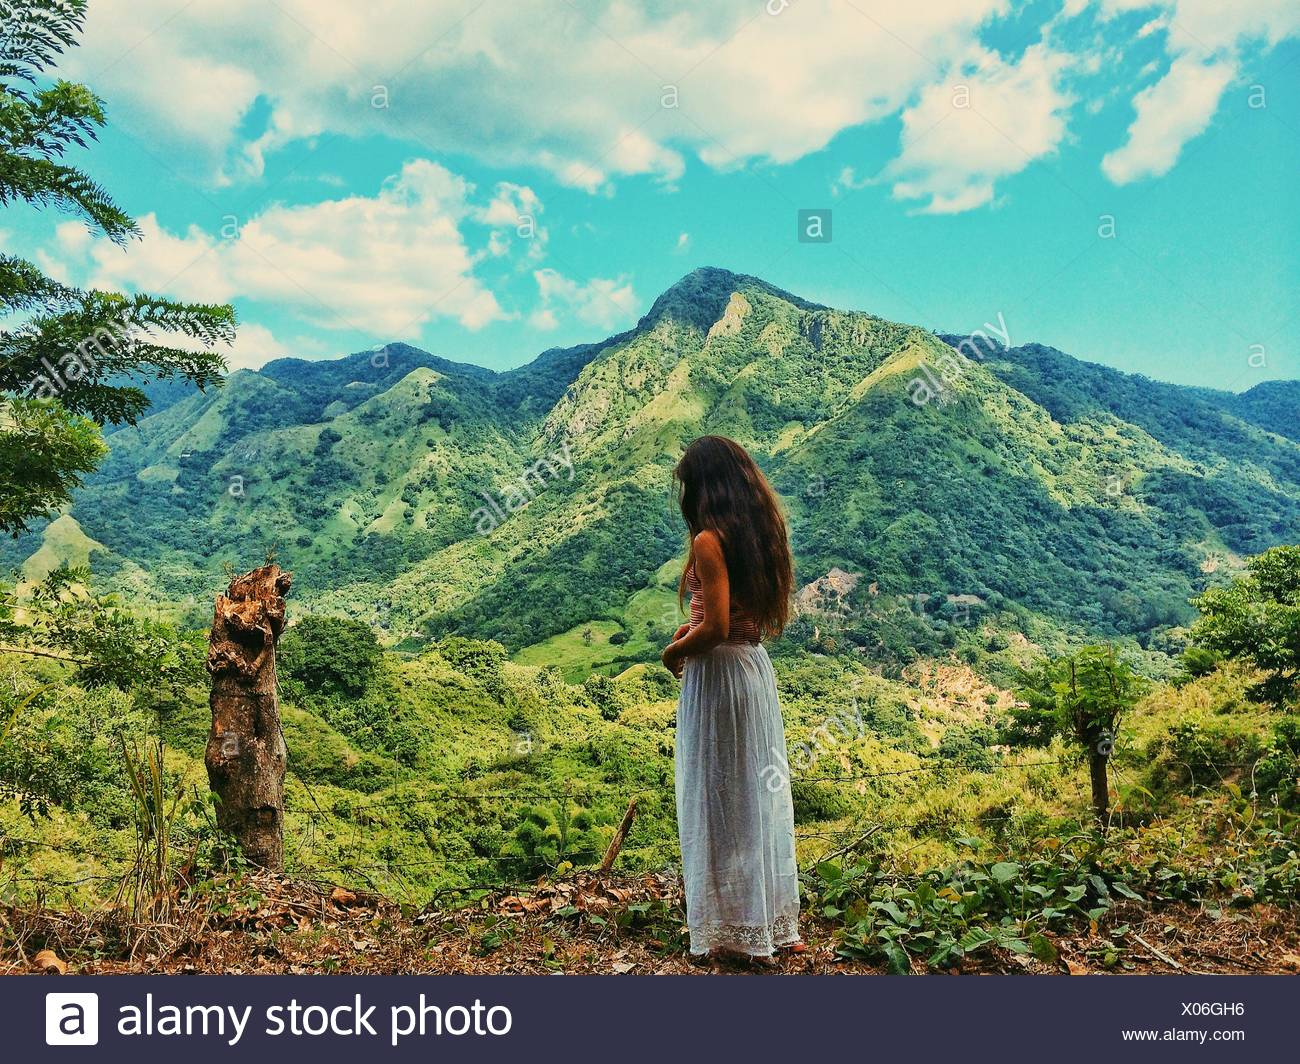 Woman with mountain in background - Stock Image